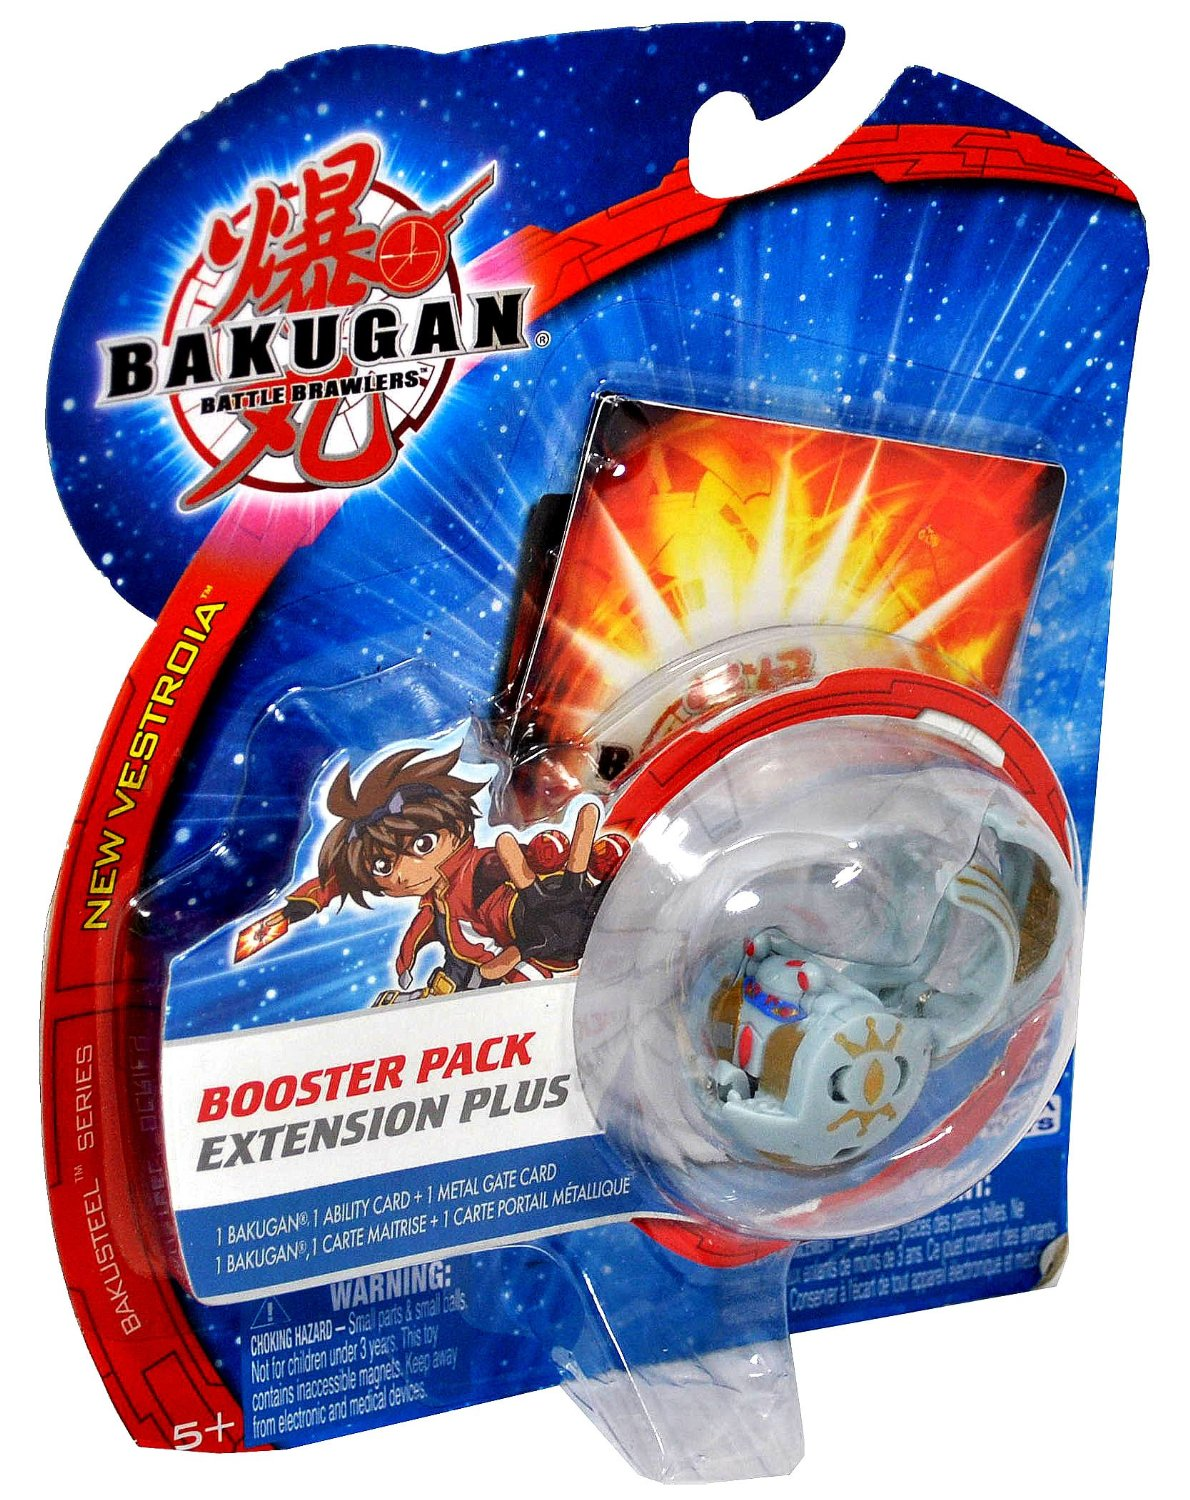 Spinmaster Bakugan Battle Brawlers New Vestroia Booster Pack Extension Plus Series - Haos Grey DUAL ELFIN with 1 Ability Card and 1 Metal Gate Card